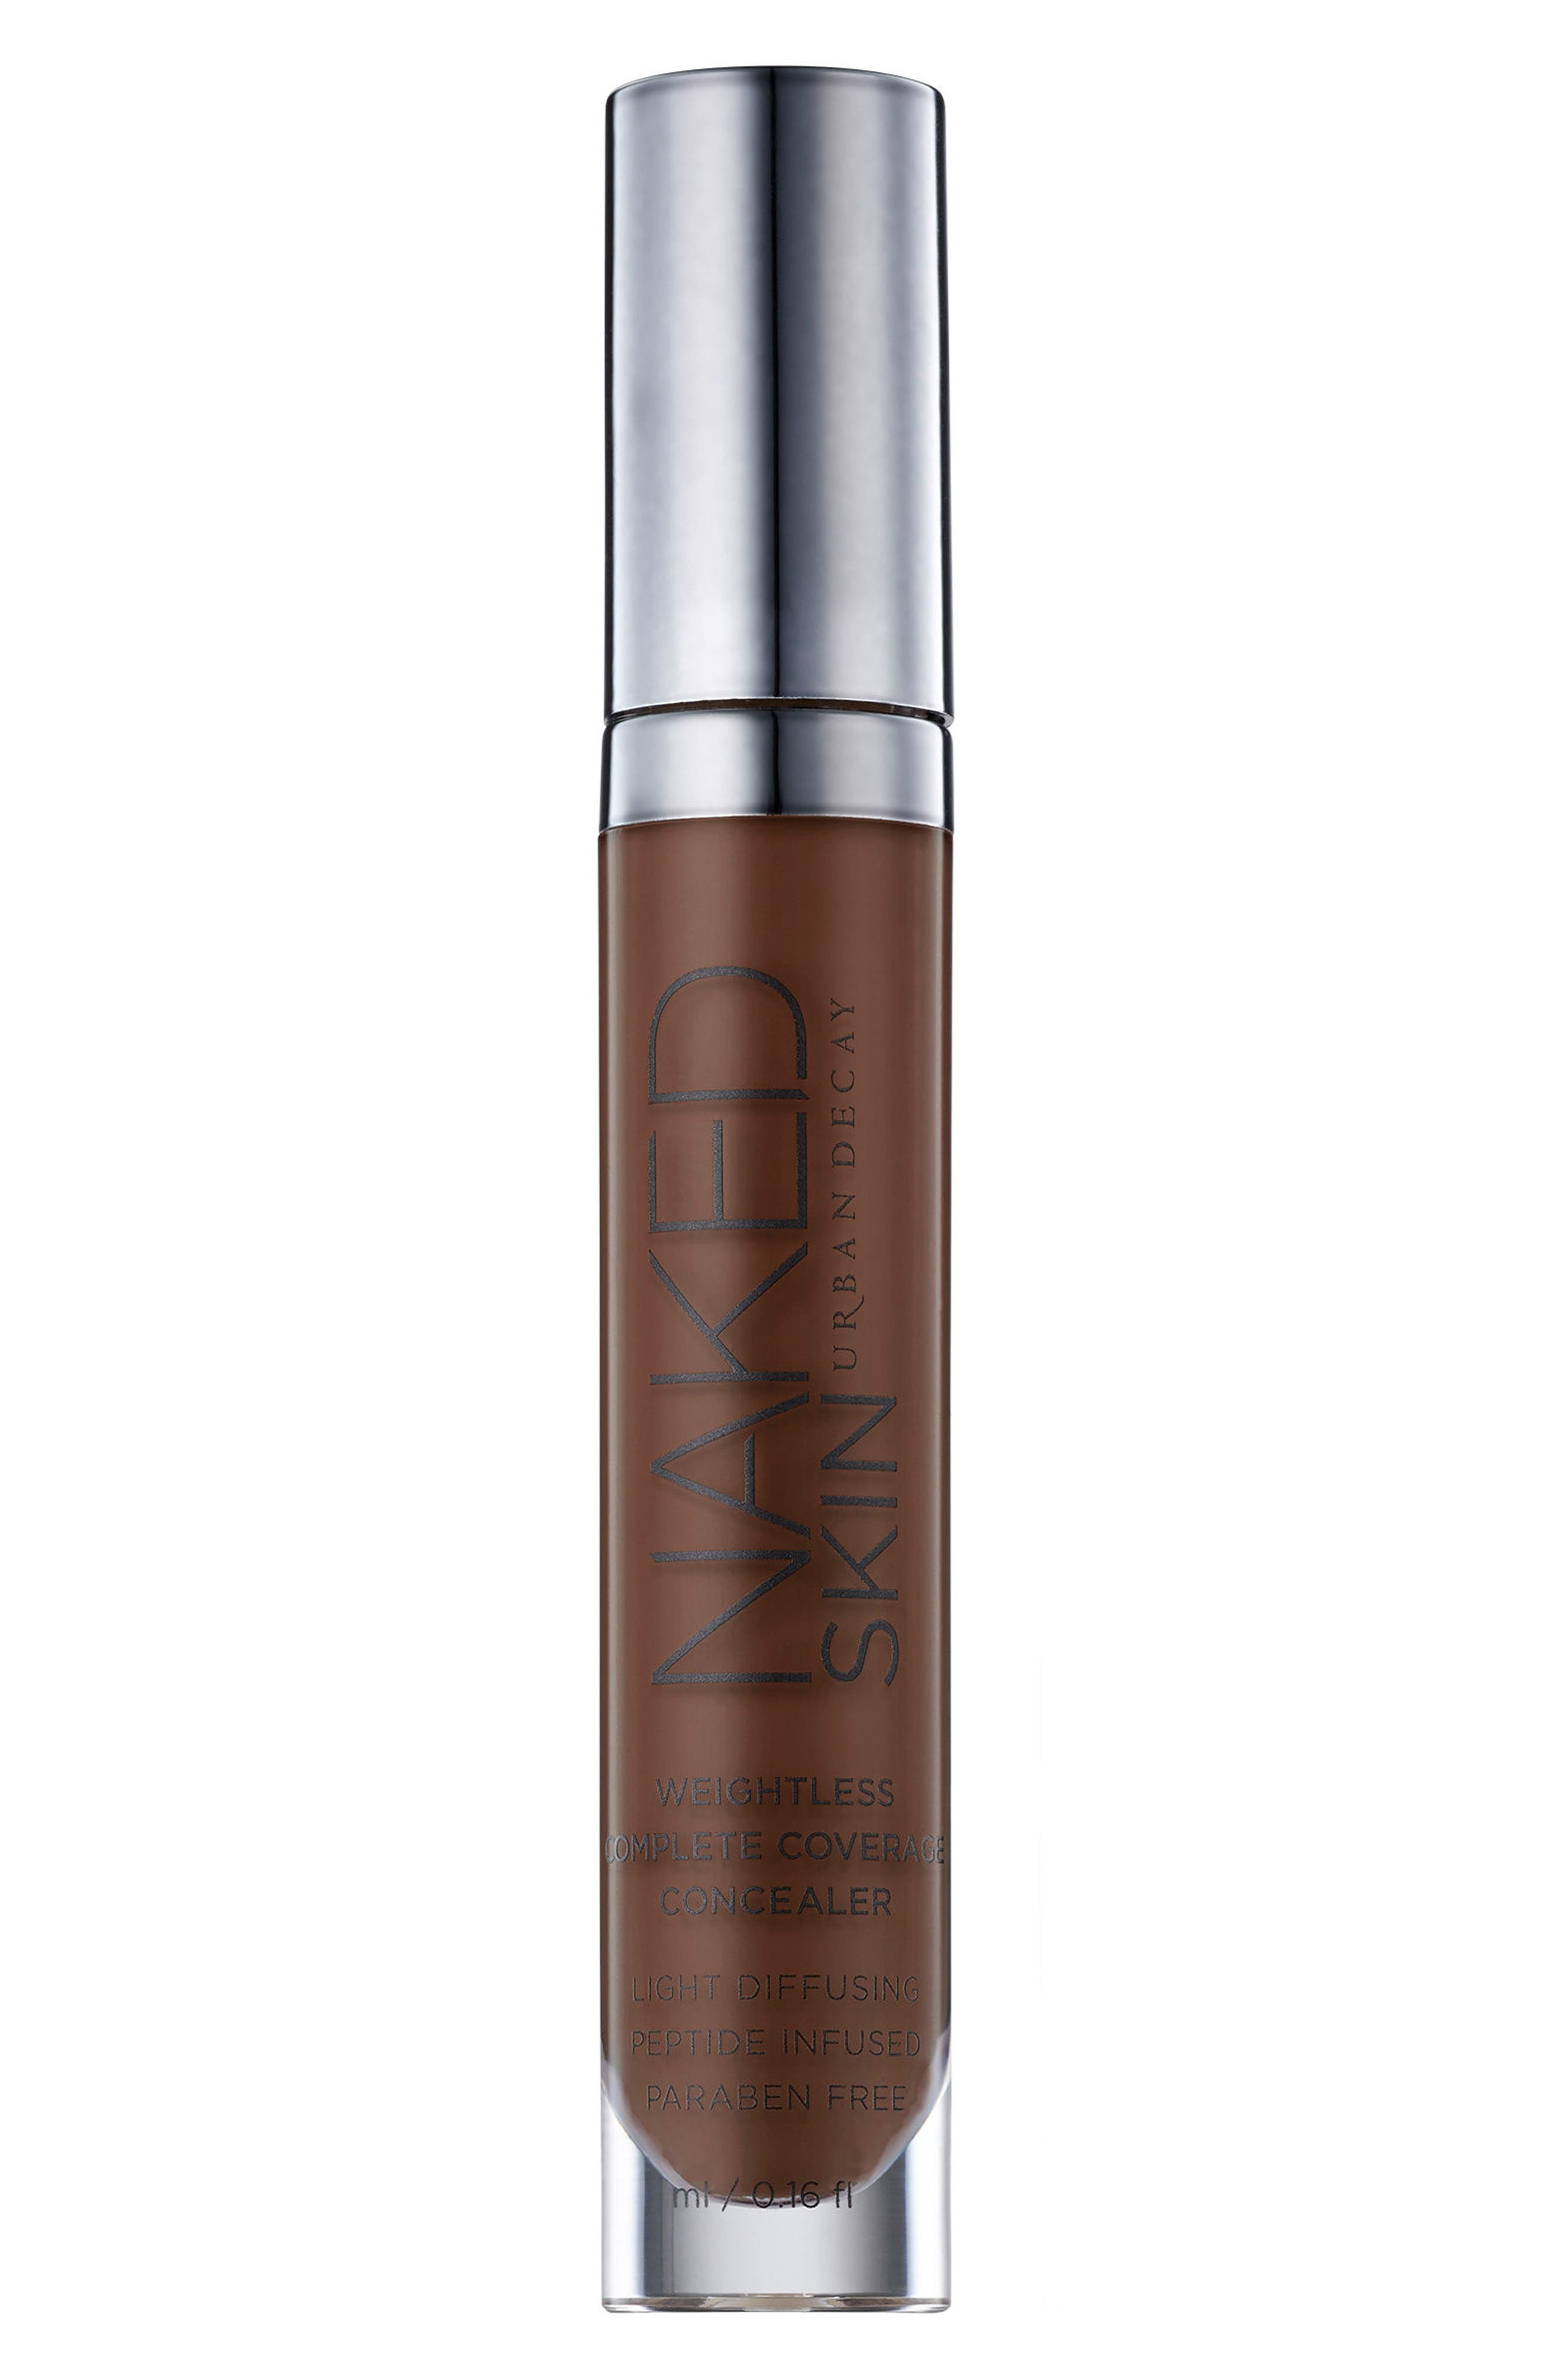 Naked Skin Weightless Complete Coverage Concealer,                             Main thumbnail 1, color,                             EXTRA DEEP NEUTRAL